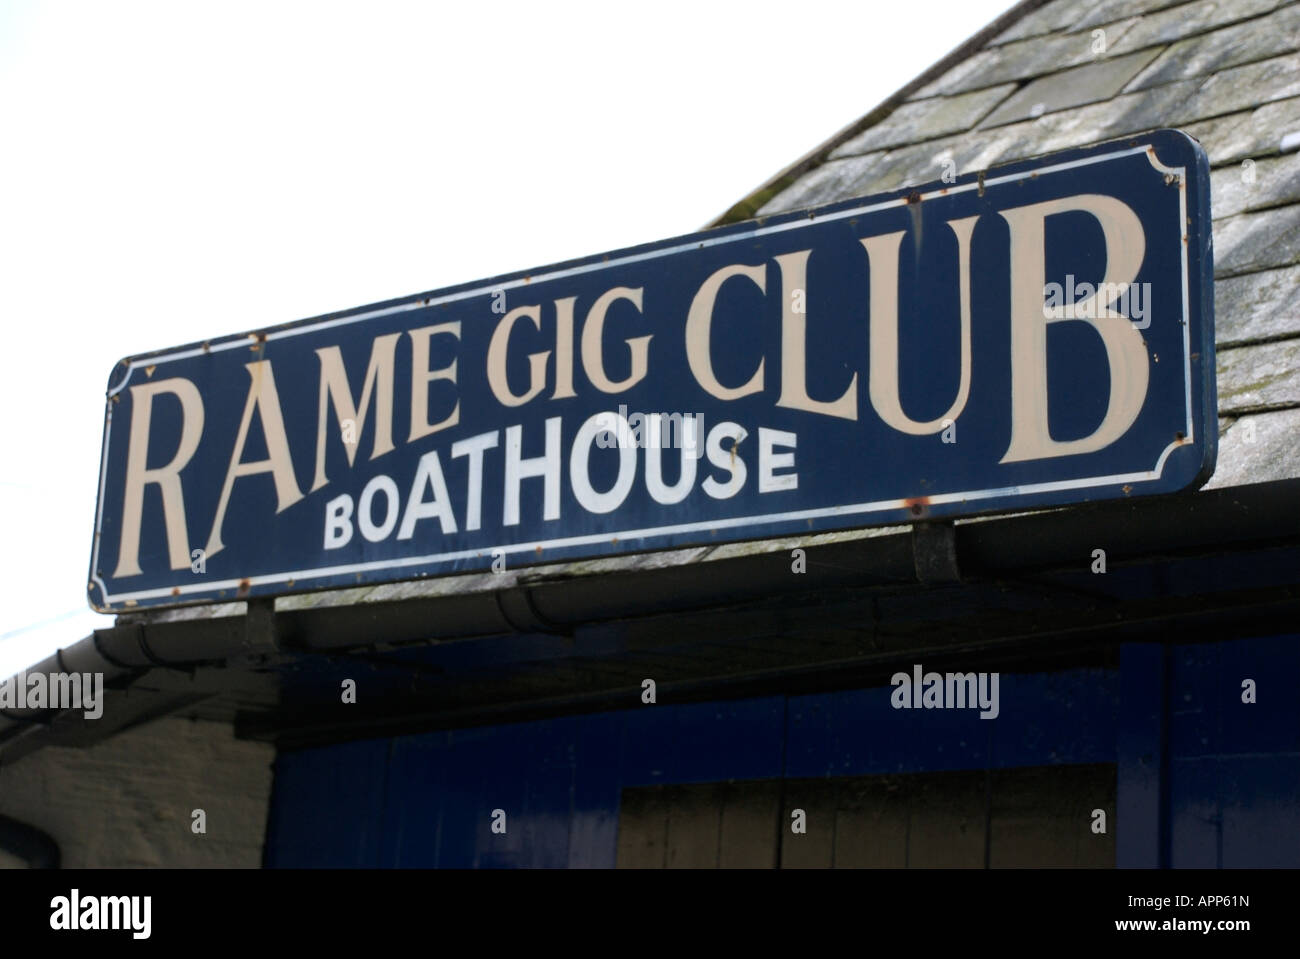 Rame Gig Club boathouse wooden sign - Stock Image